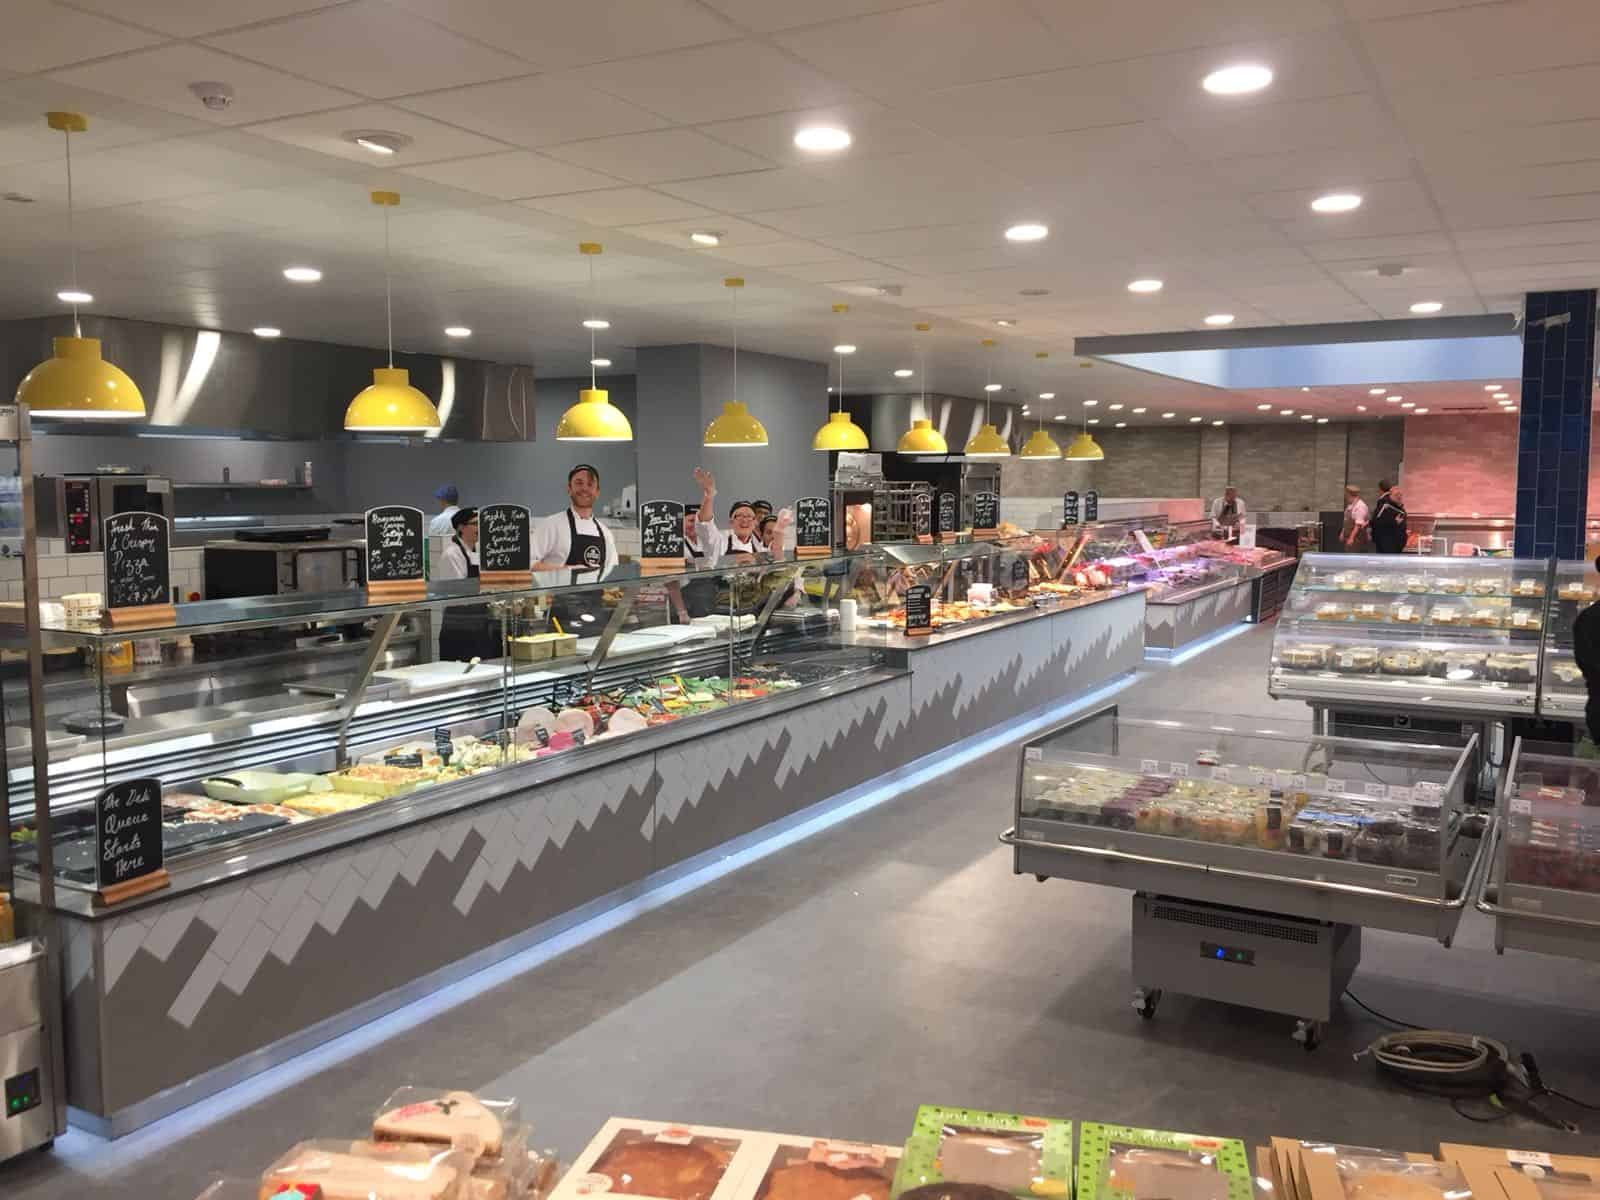 Martin Food Equipment Deli-Area-at-McHughs-Centra-Greendale-Kilbarrack McHugh's Centra, Greendale, Kilbarrack, Dublin Installations